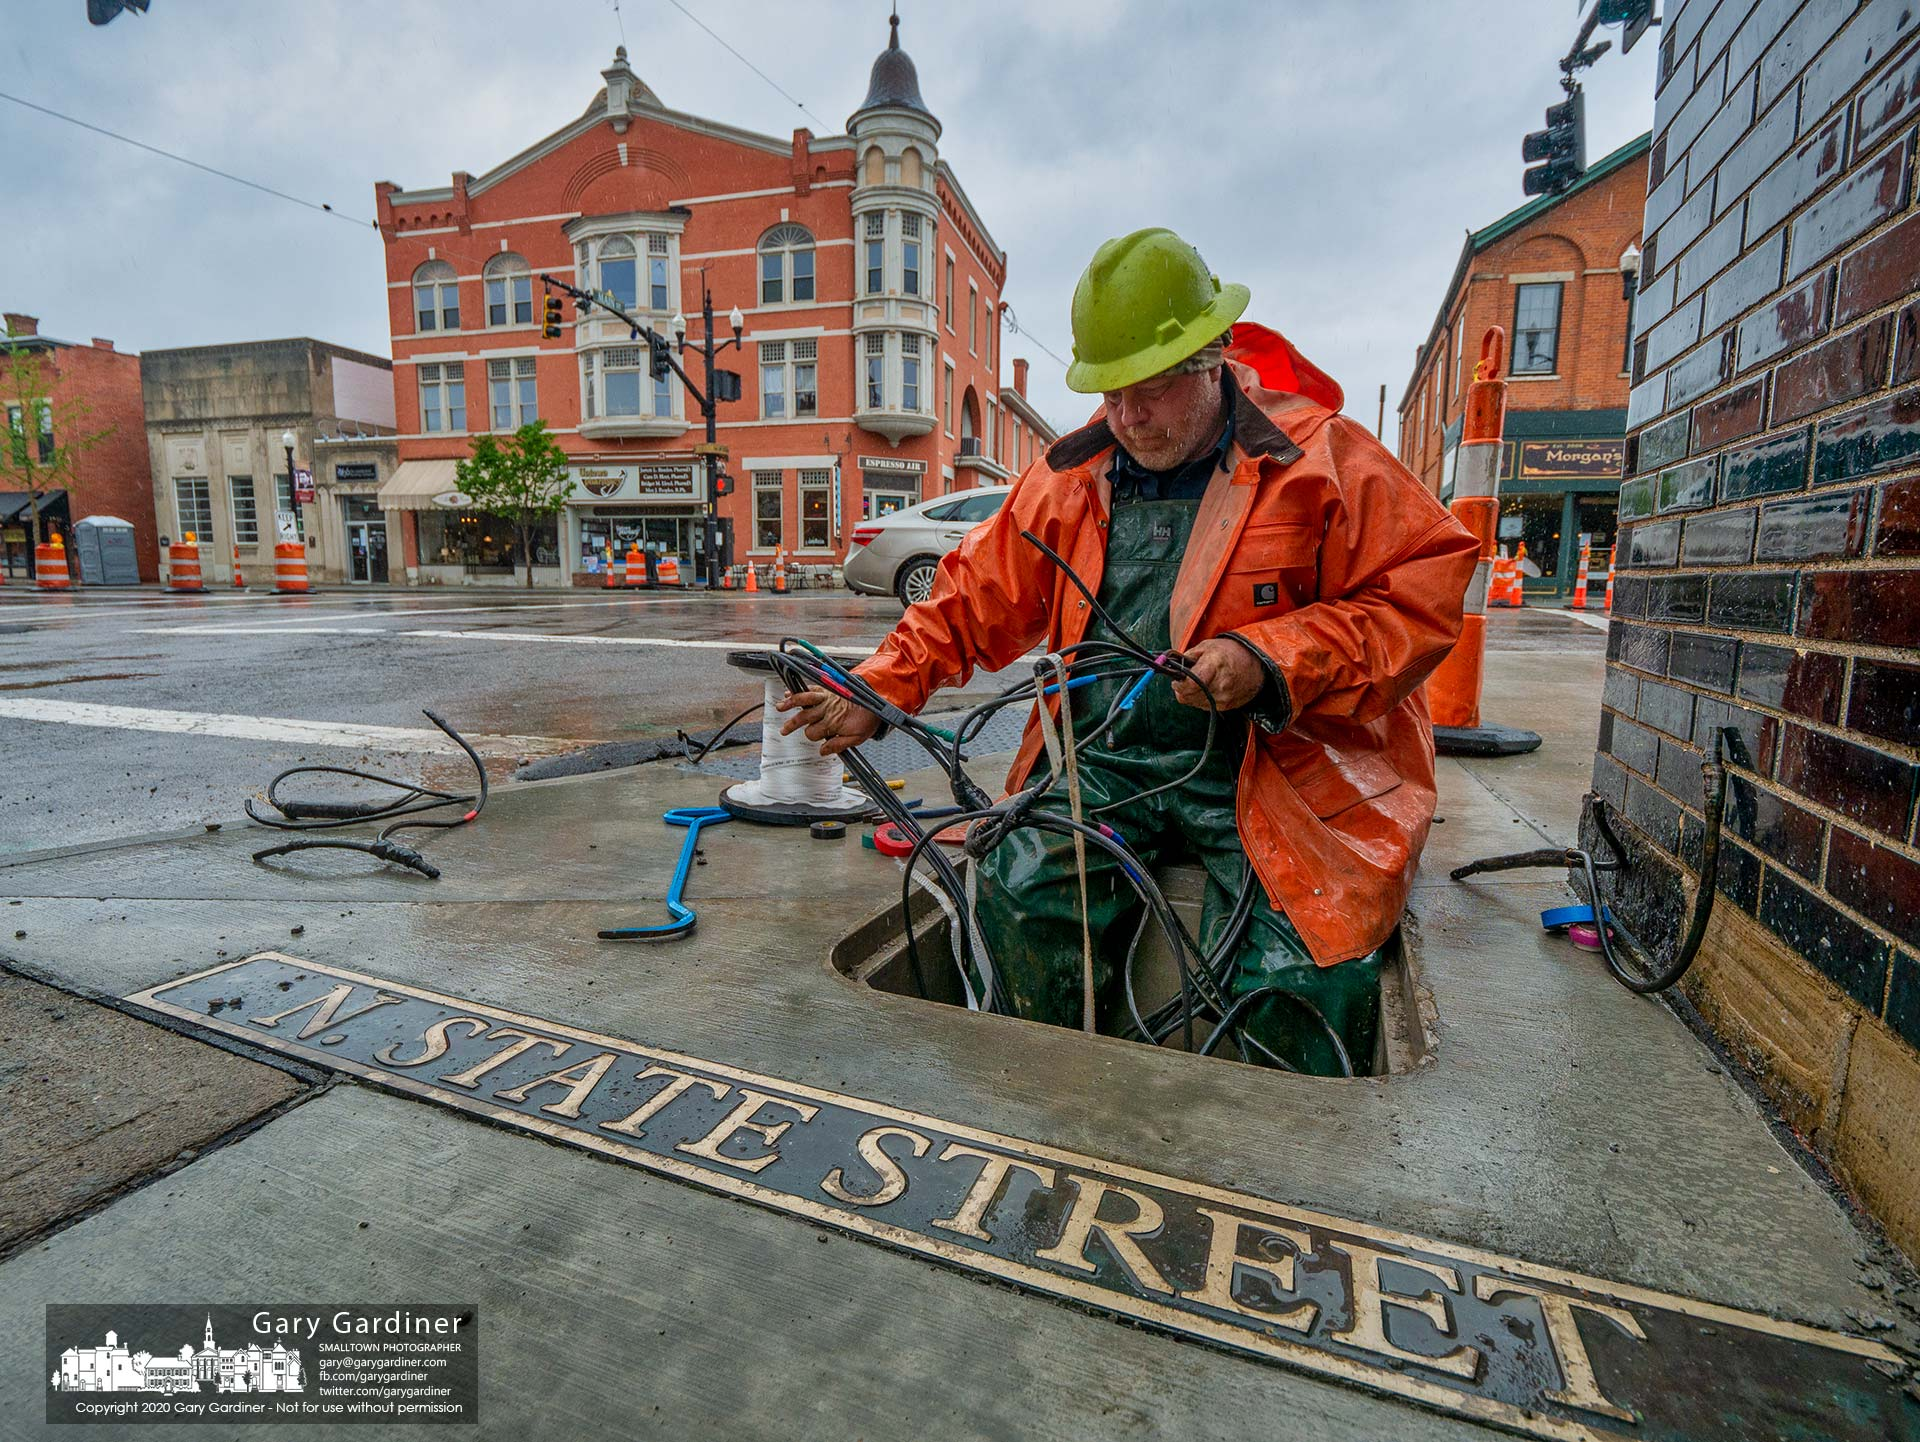 An electrician sorts through old and new cabling for streetlights and signal lights as he replaces old underground cables as part of the Uptown Improvement Project. My Final Photo for May 21, 2020.